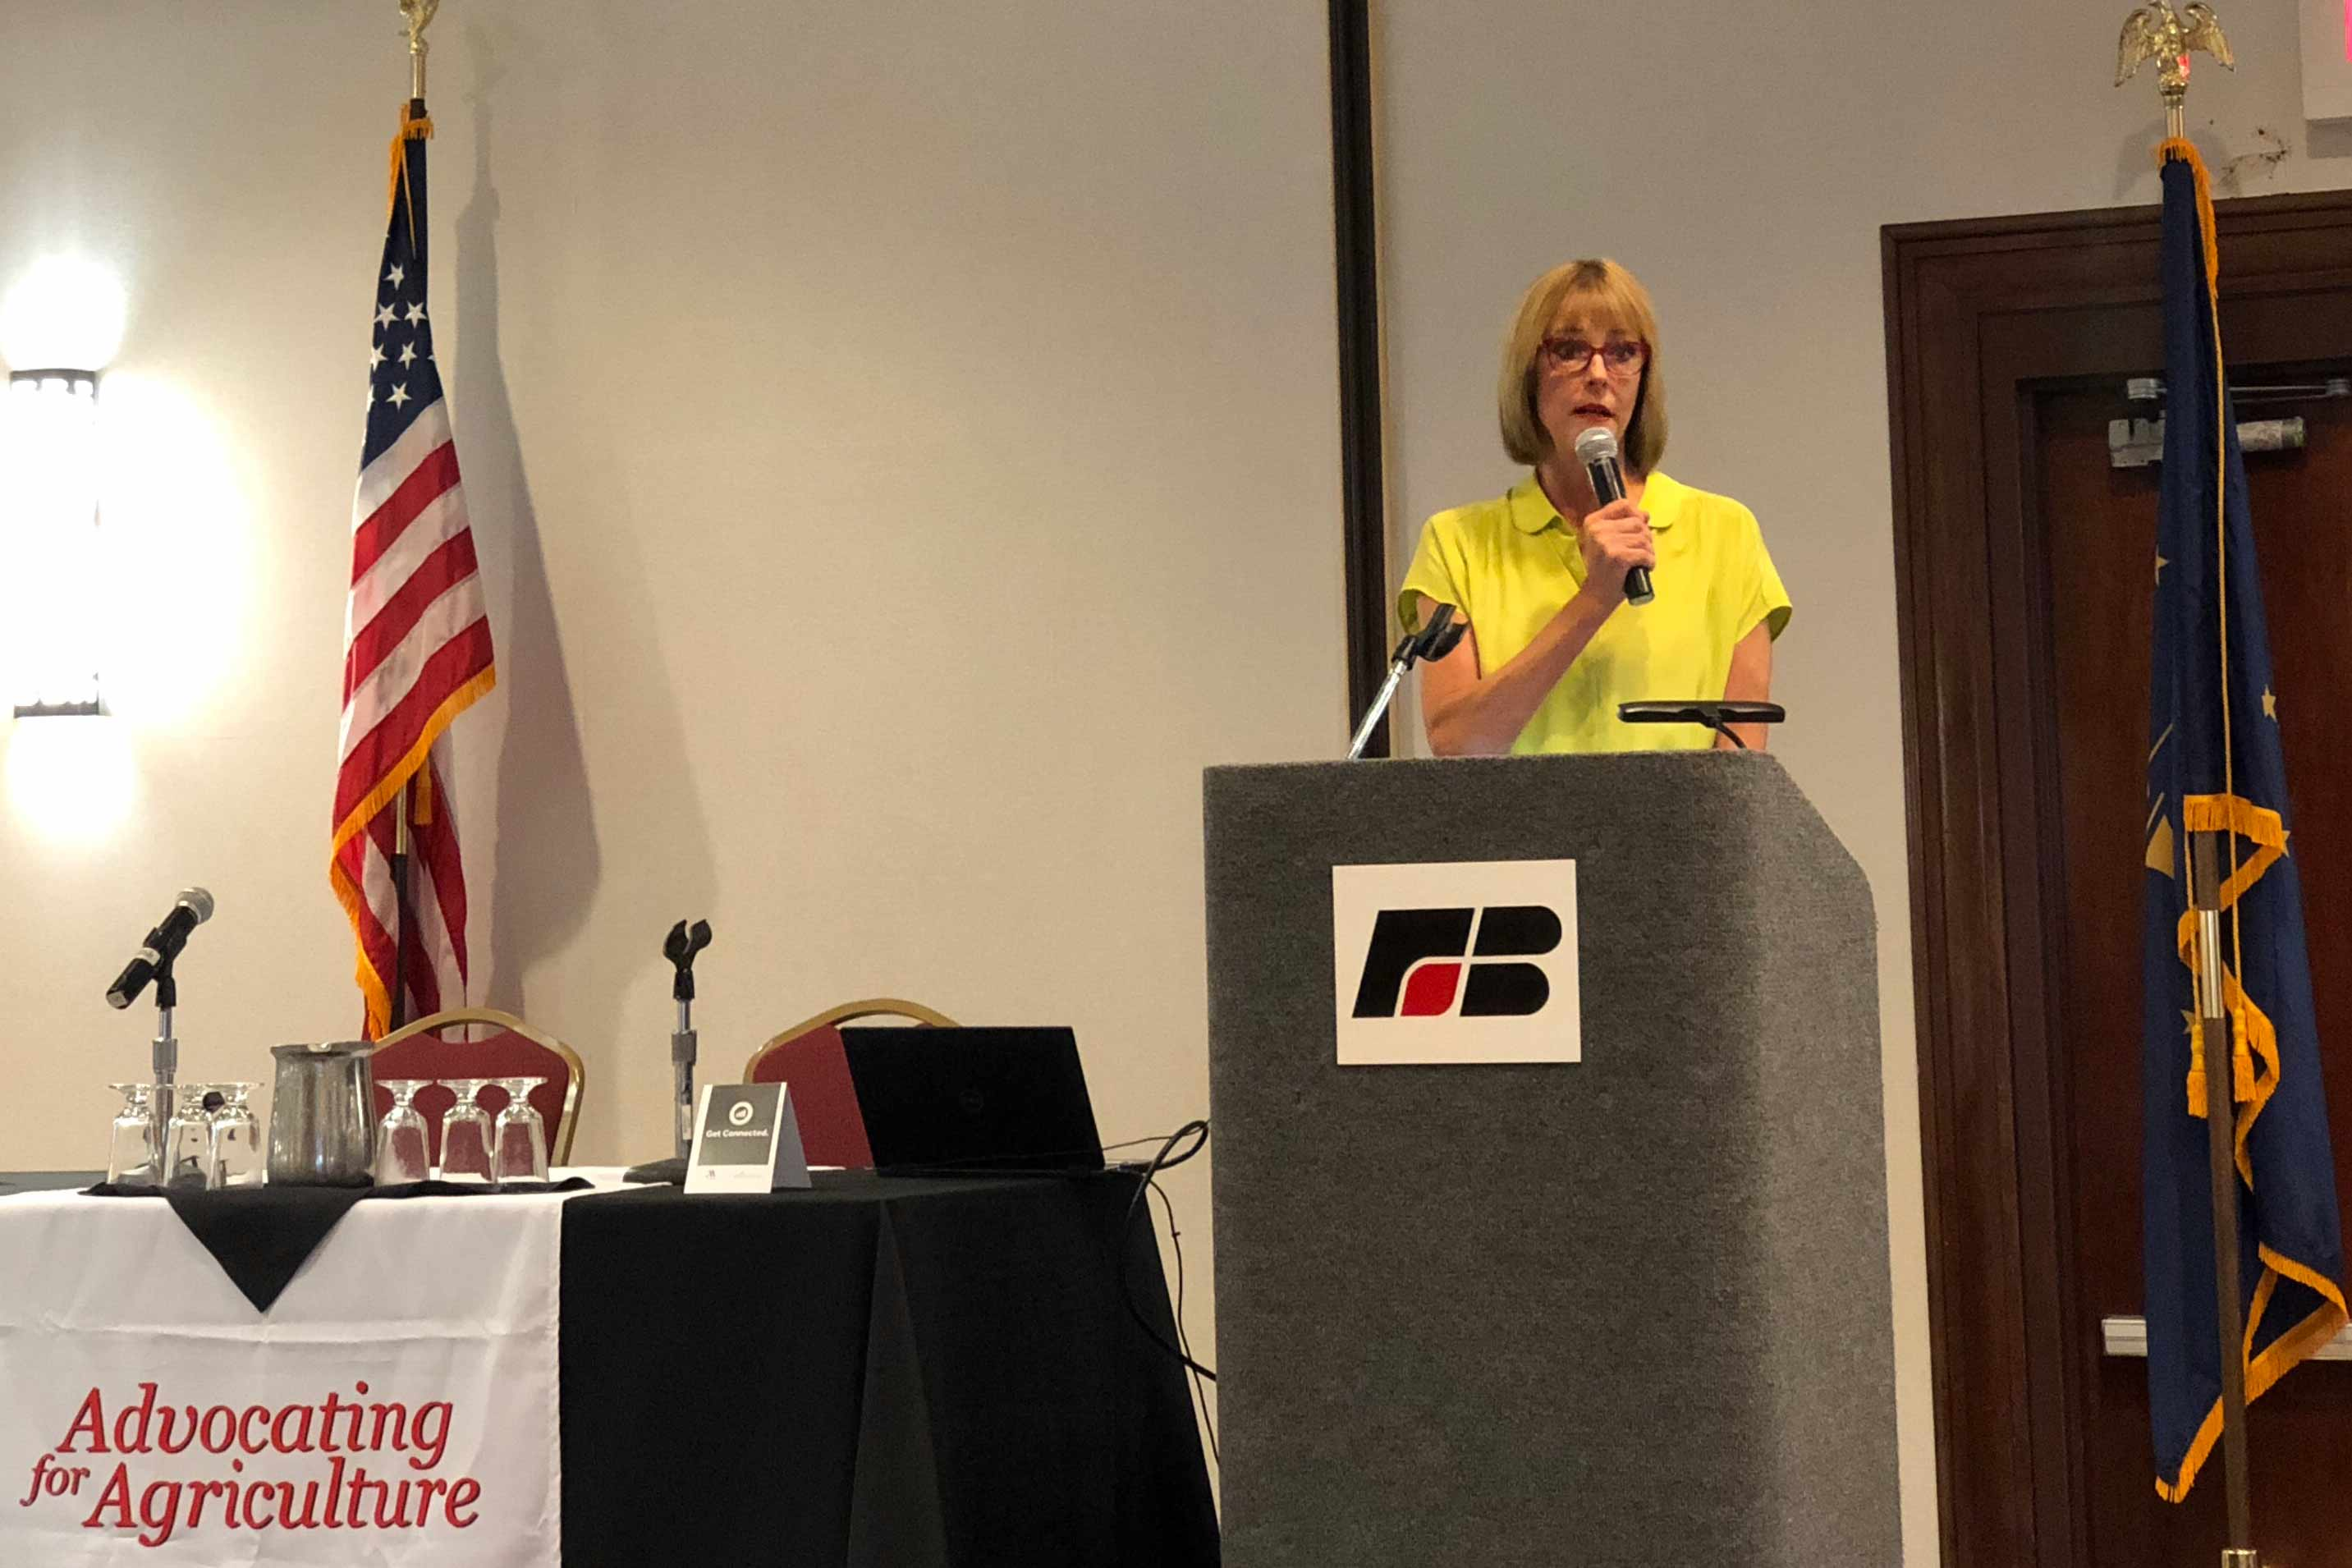 Lt. Gov. Suzanne Crouch speaks during the session about the state's dedication to rural areas and challenges they face.(Brock Turner, WFIU/WTIU News)